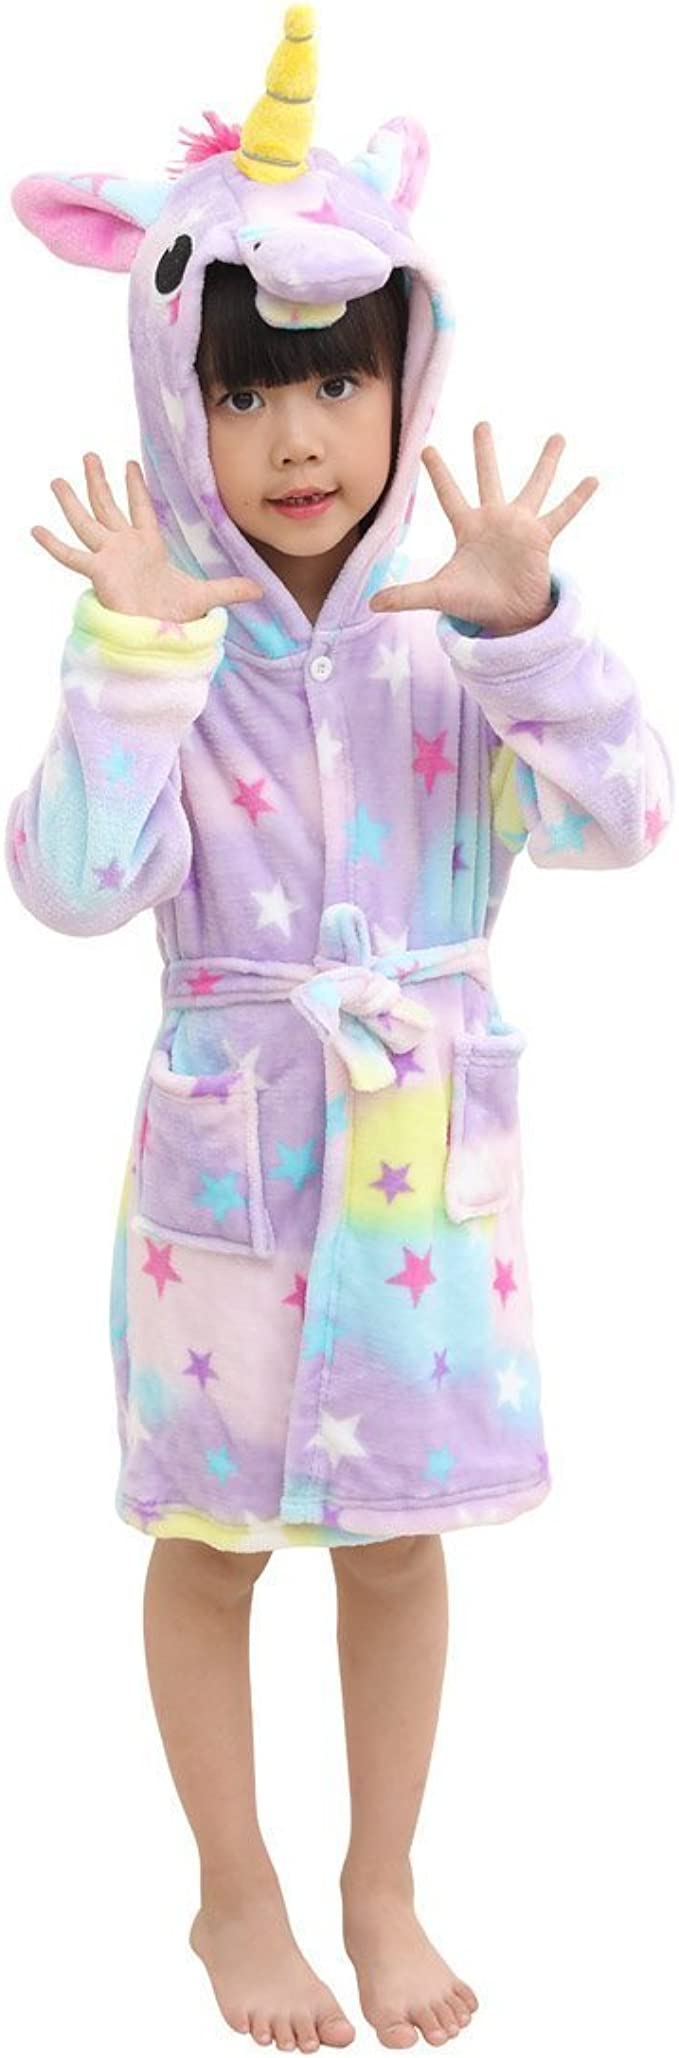 Ex Highstreet Kids Girls Pink Unicorn Print Hooded Fleece Dressing Gown Robe Bathrobe up to 7 Years